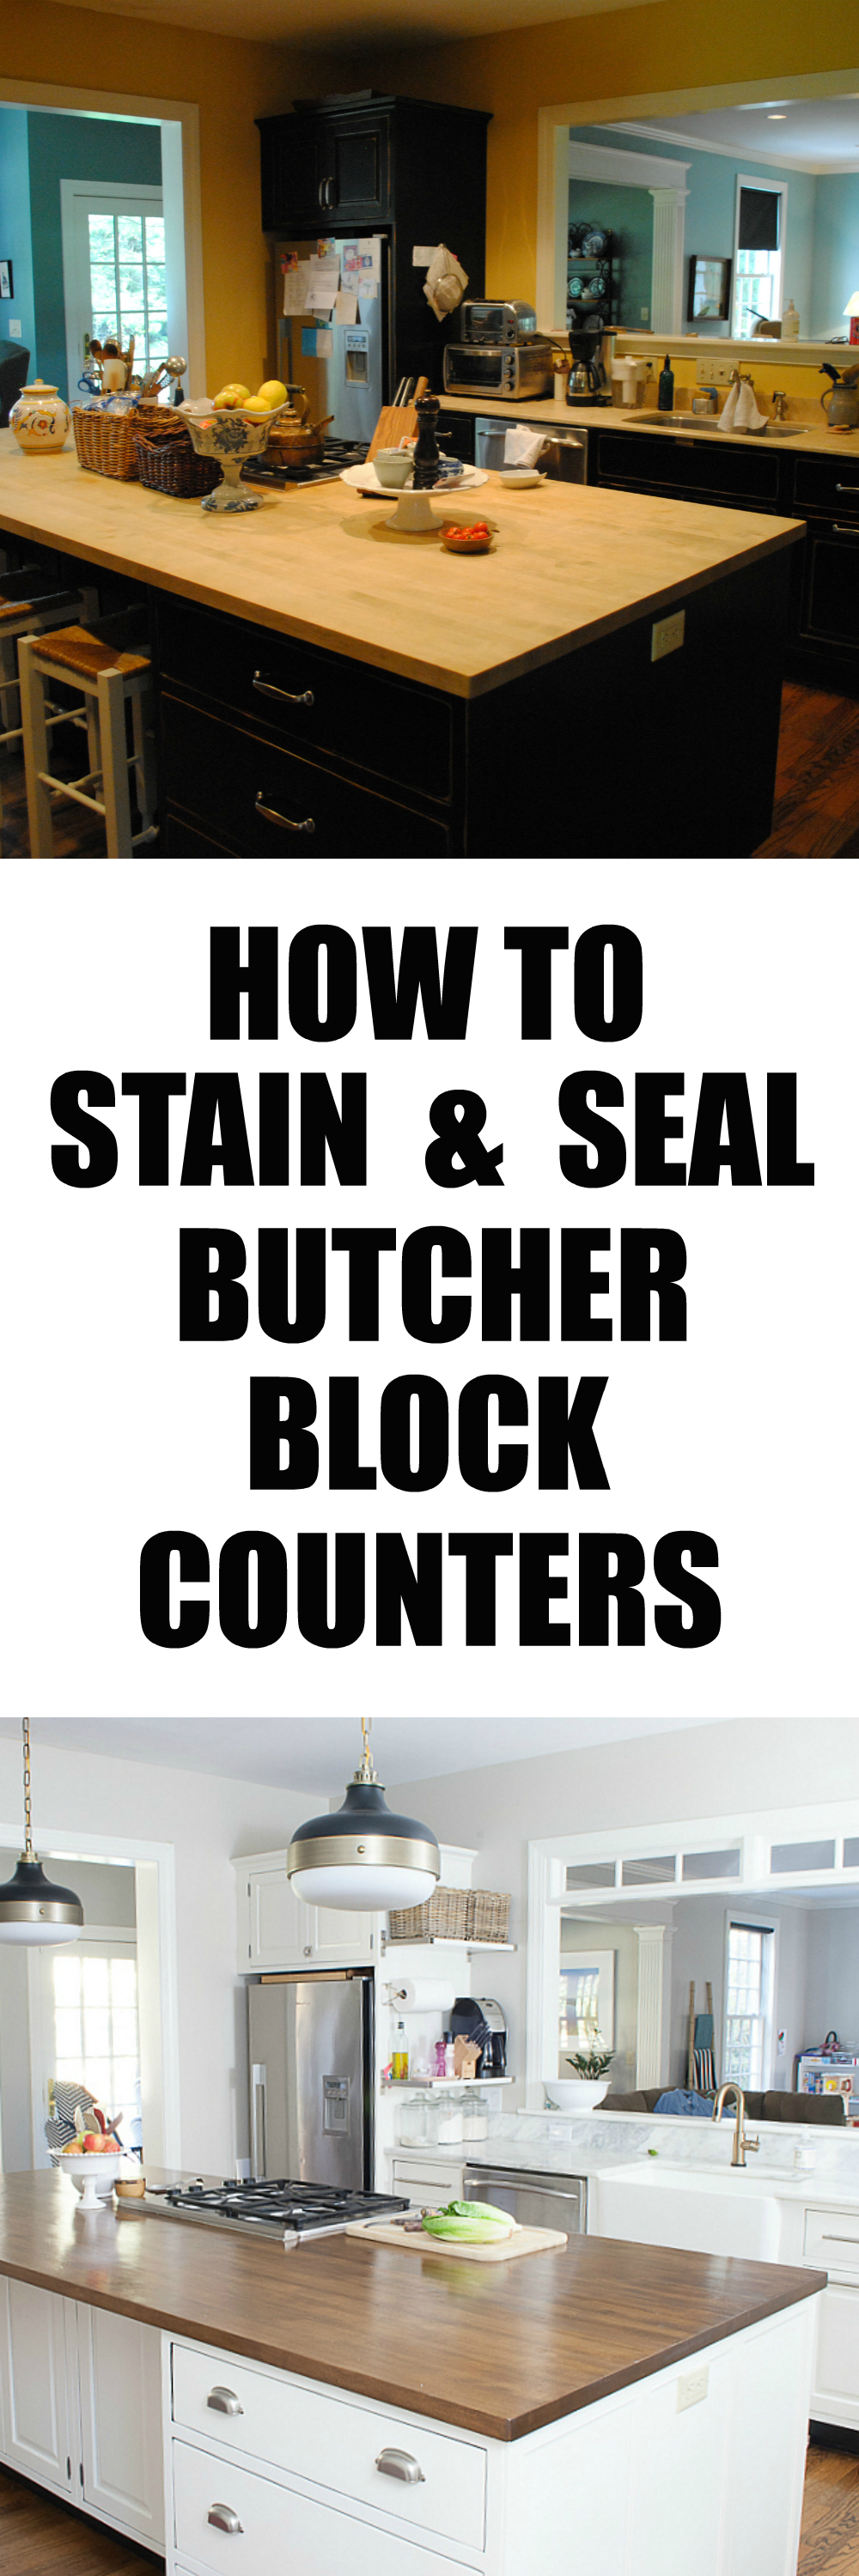 how to stain and seal butcher block butcher block kitchen countertops how to stain and seal butcher block counters